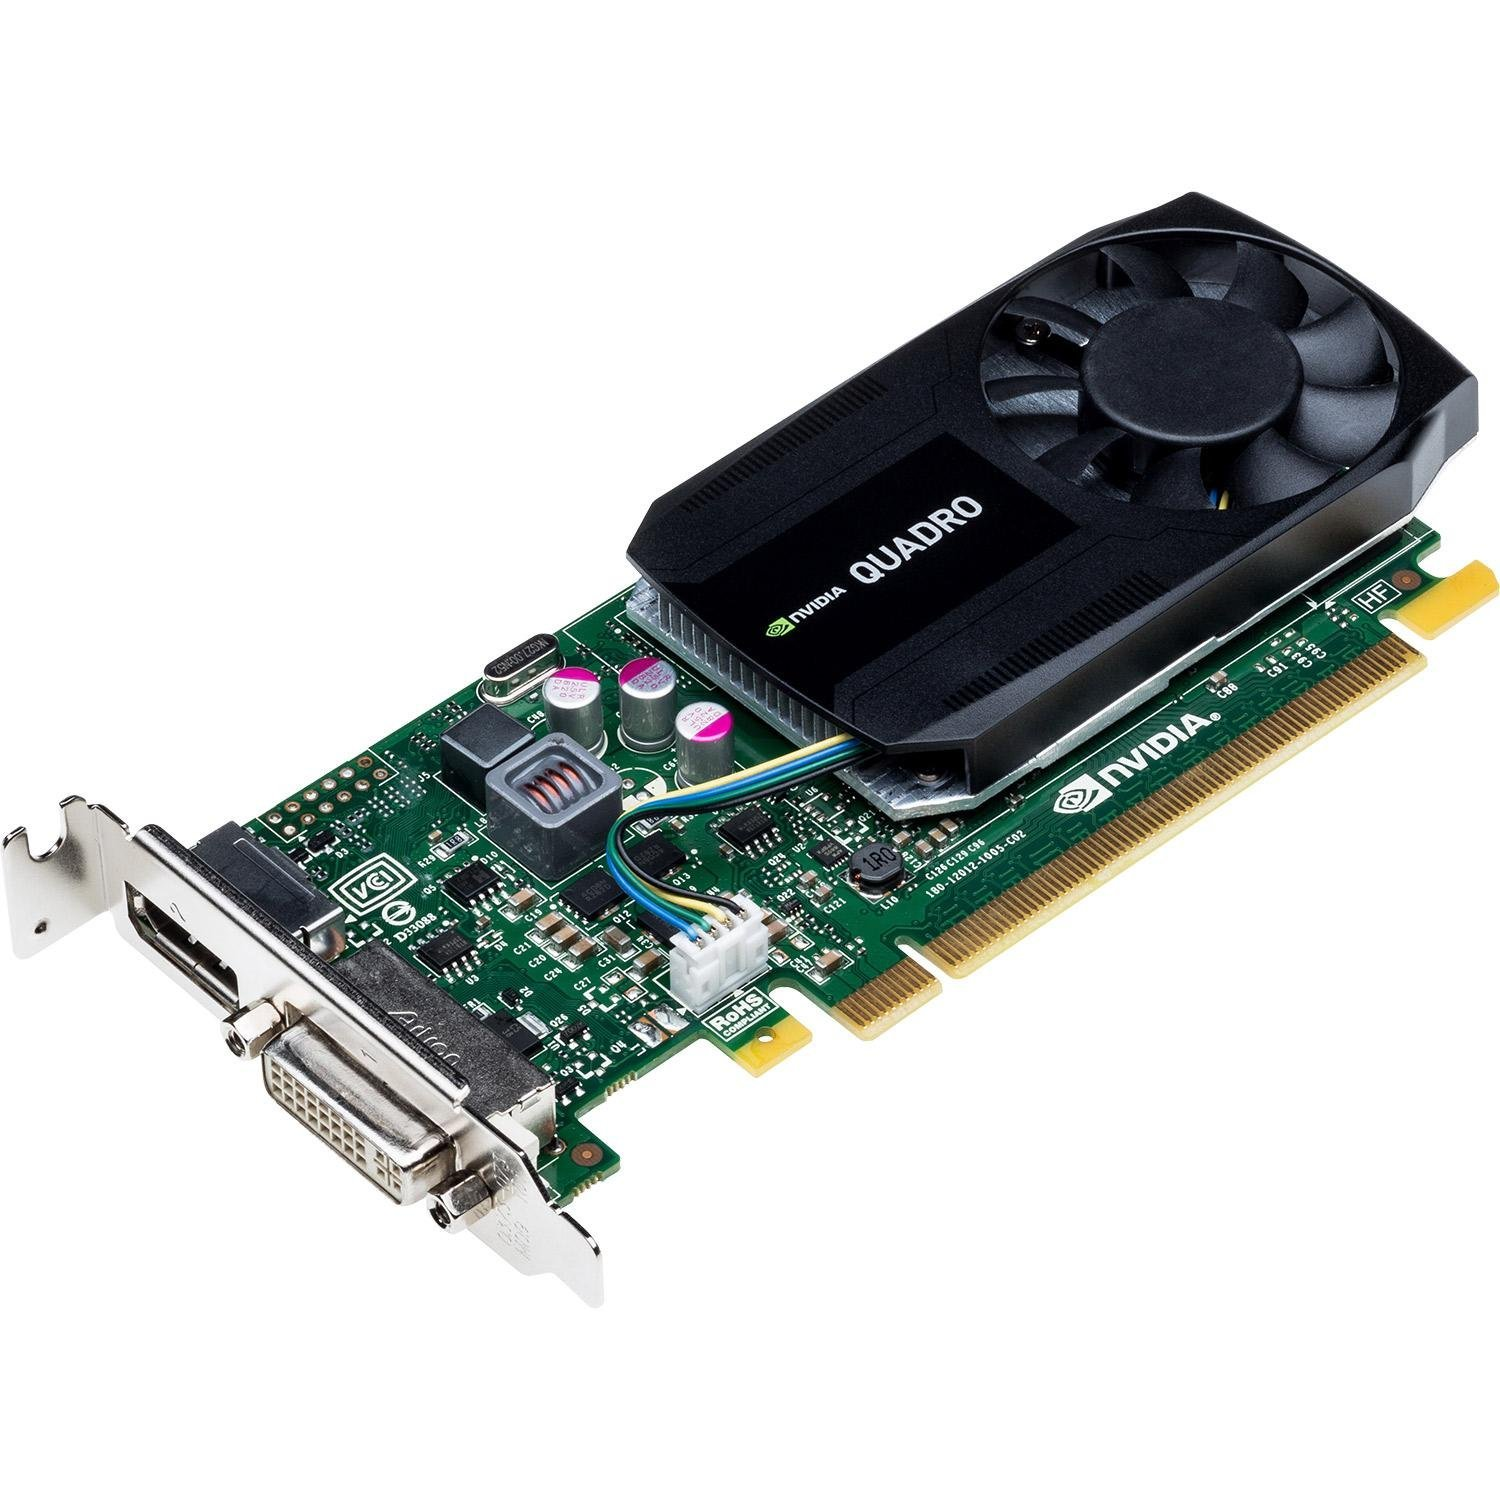 Amazon.com: PNY Video Card Graphics Cards VCQK620-PB